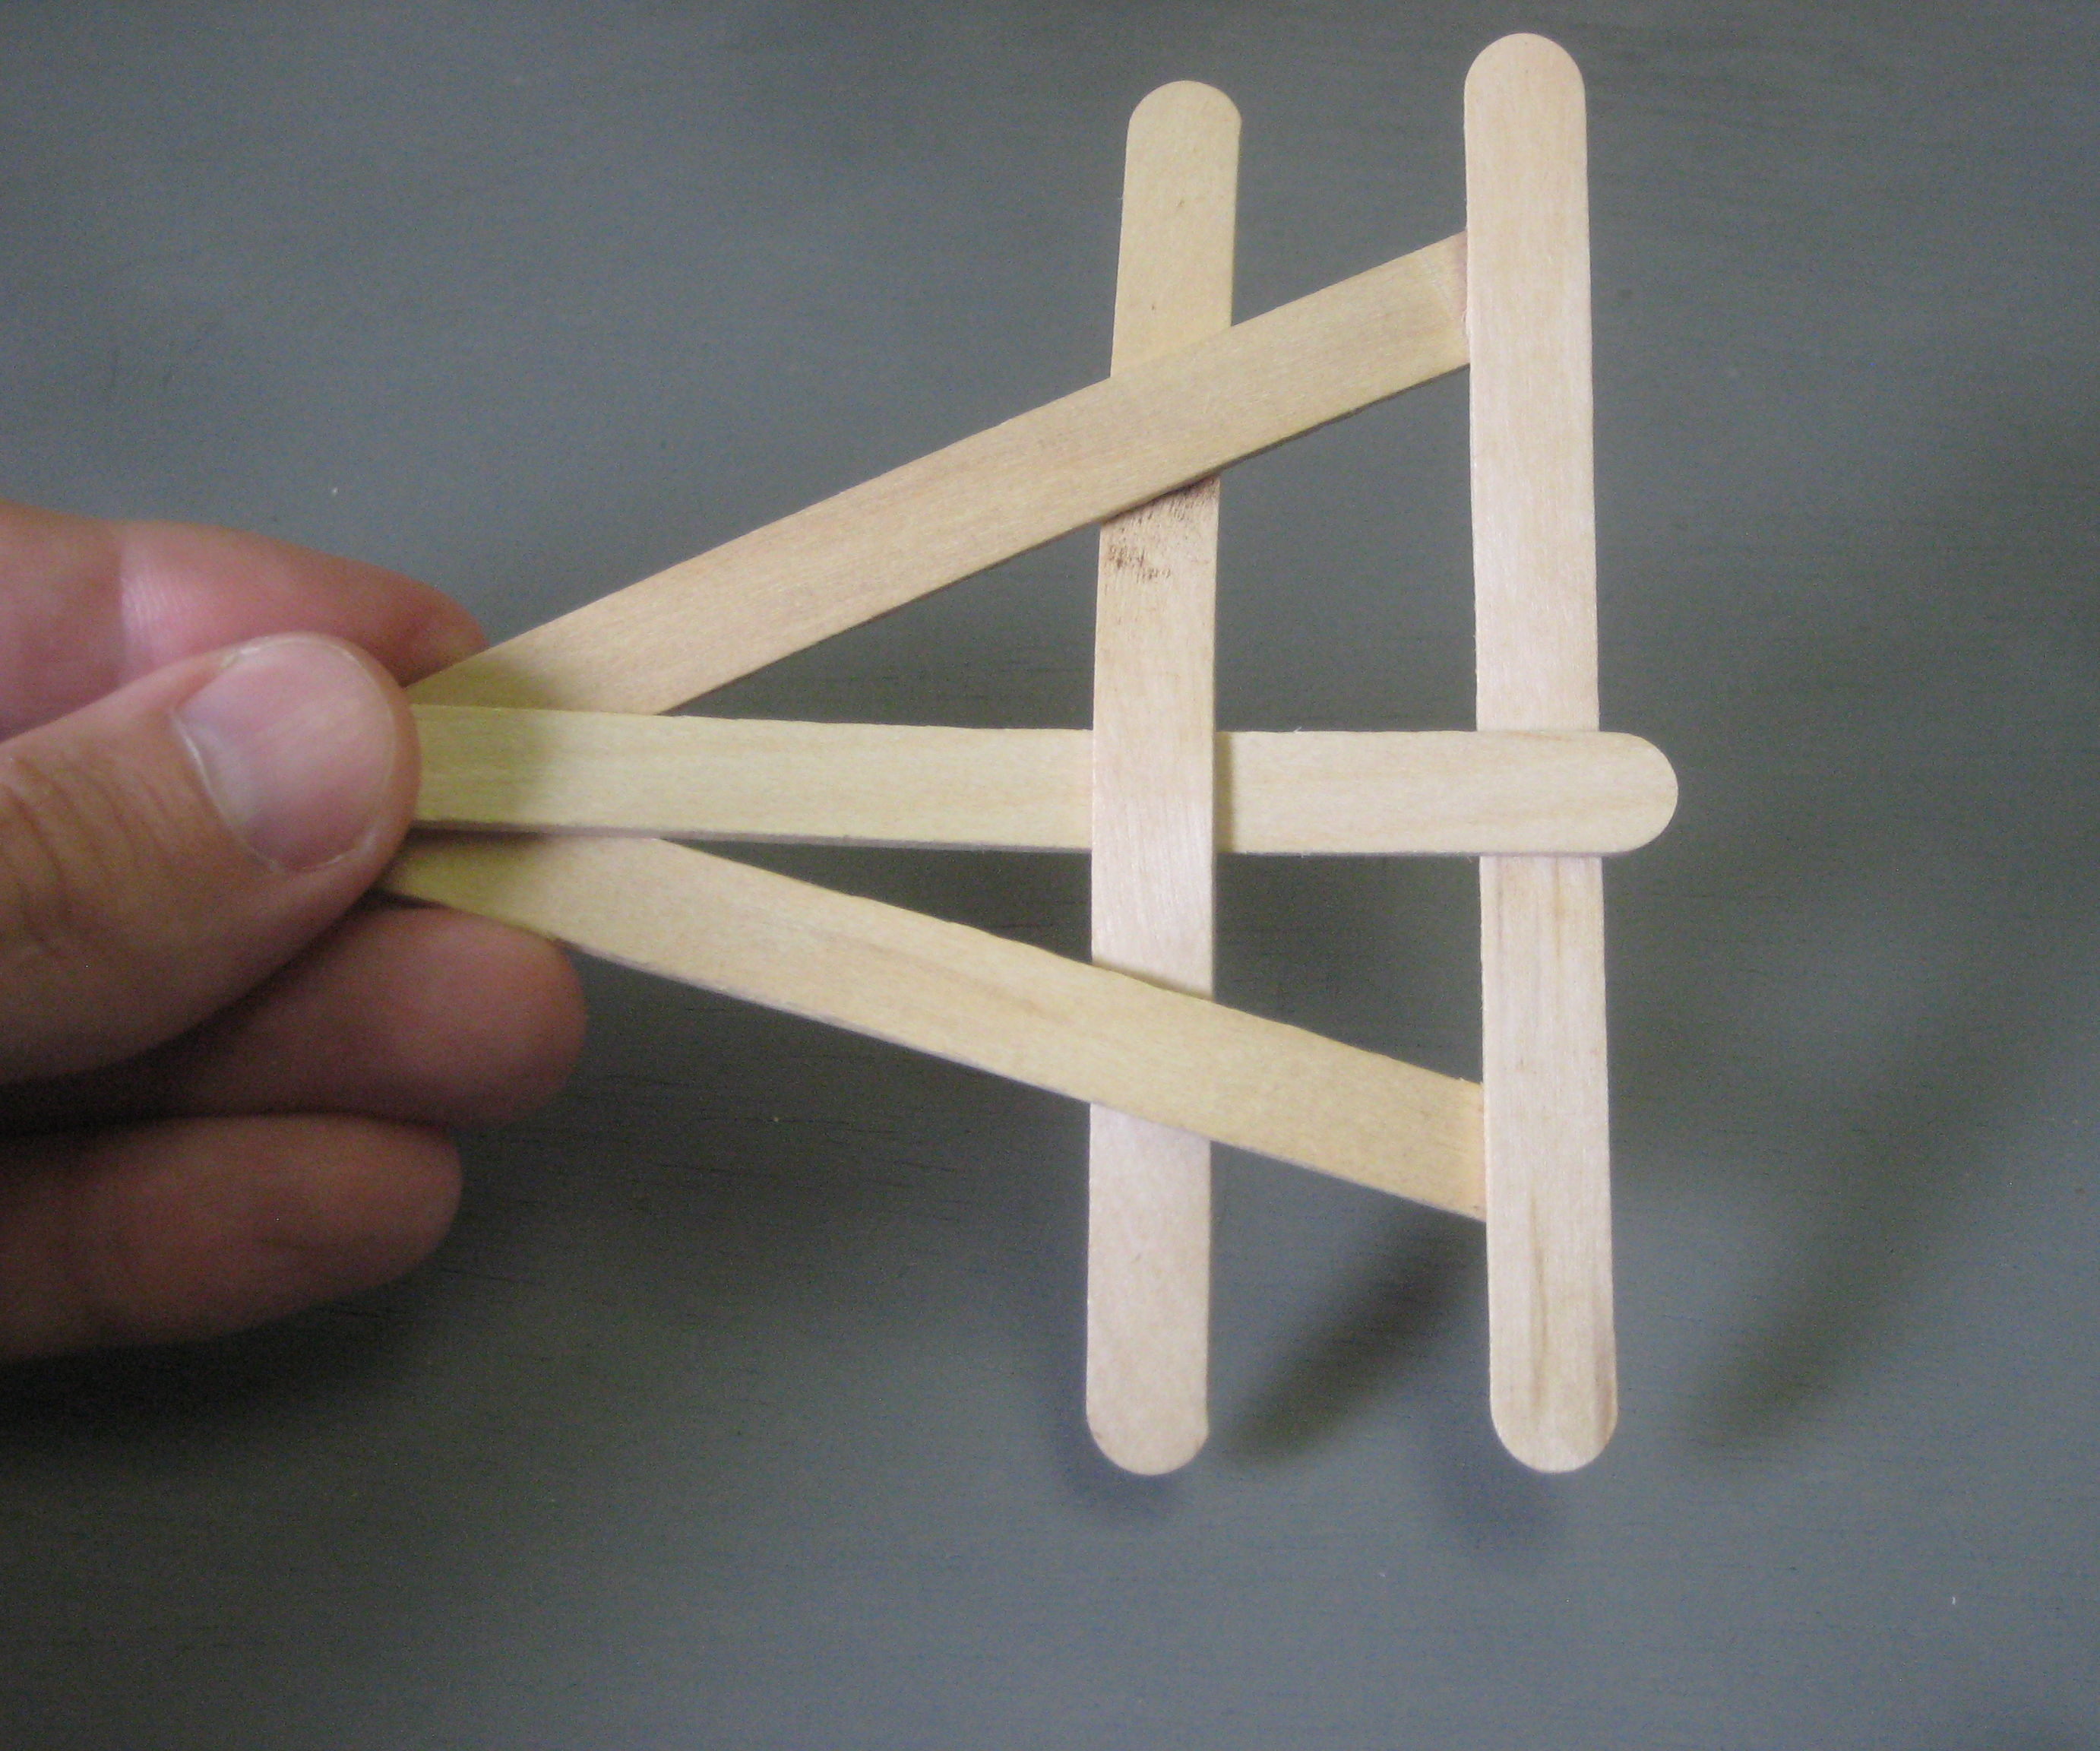 5 Second Exploding Popsicle Stick Frizbee